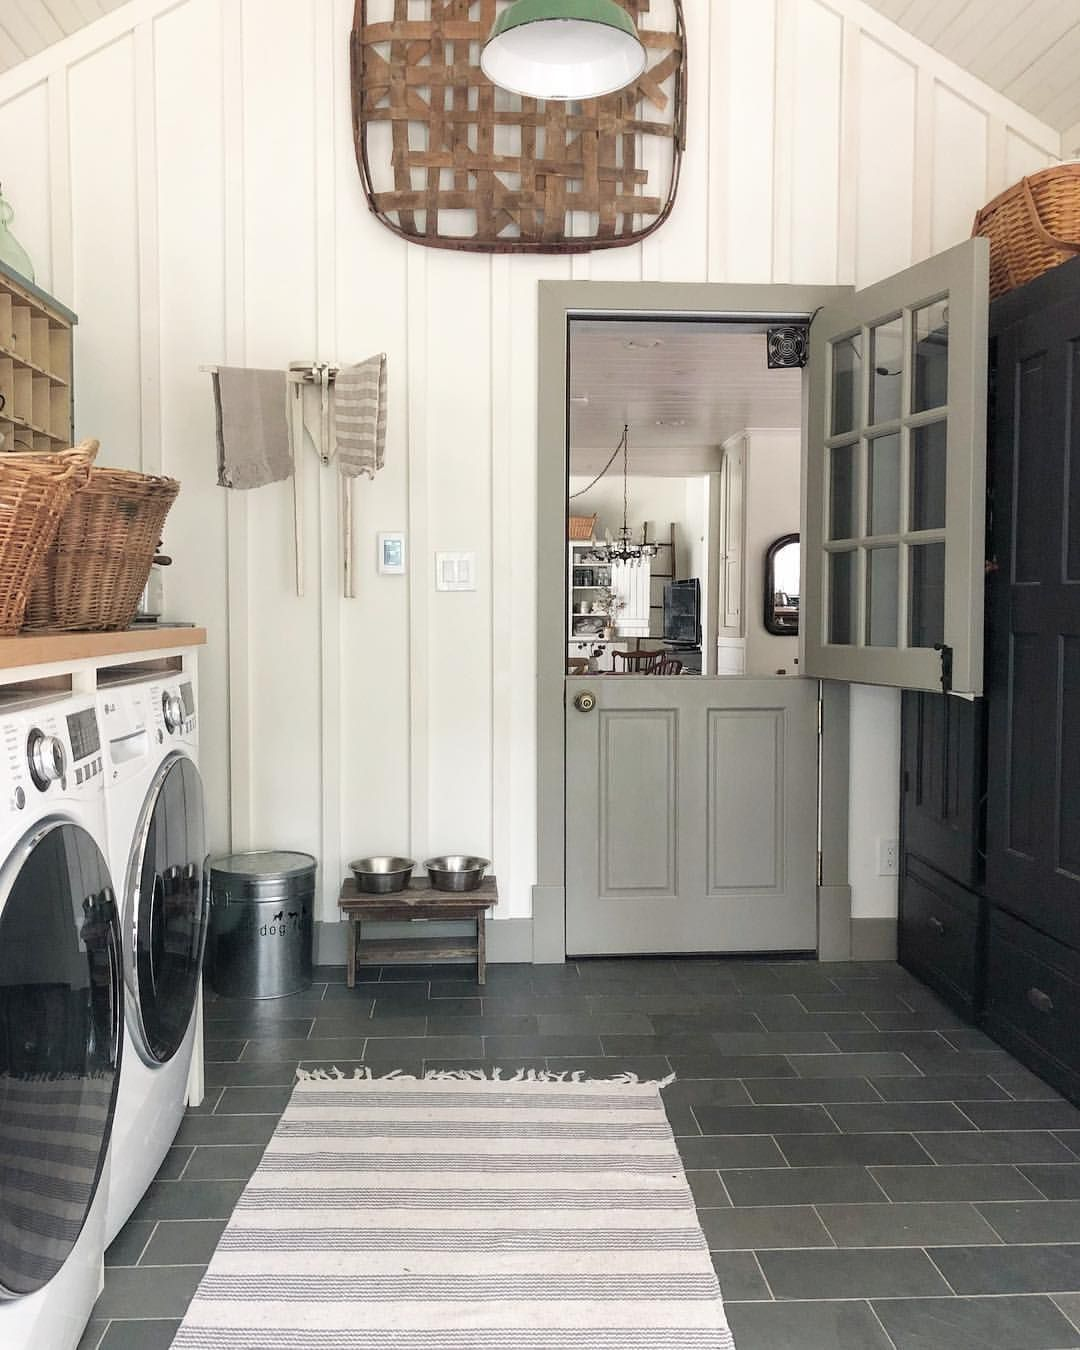 Hartland Kitchen And Laundry Room Remodel: Pin By Michelle Parker On Barndo Ideas